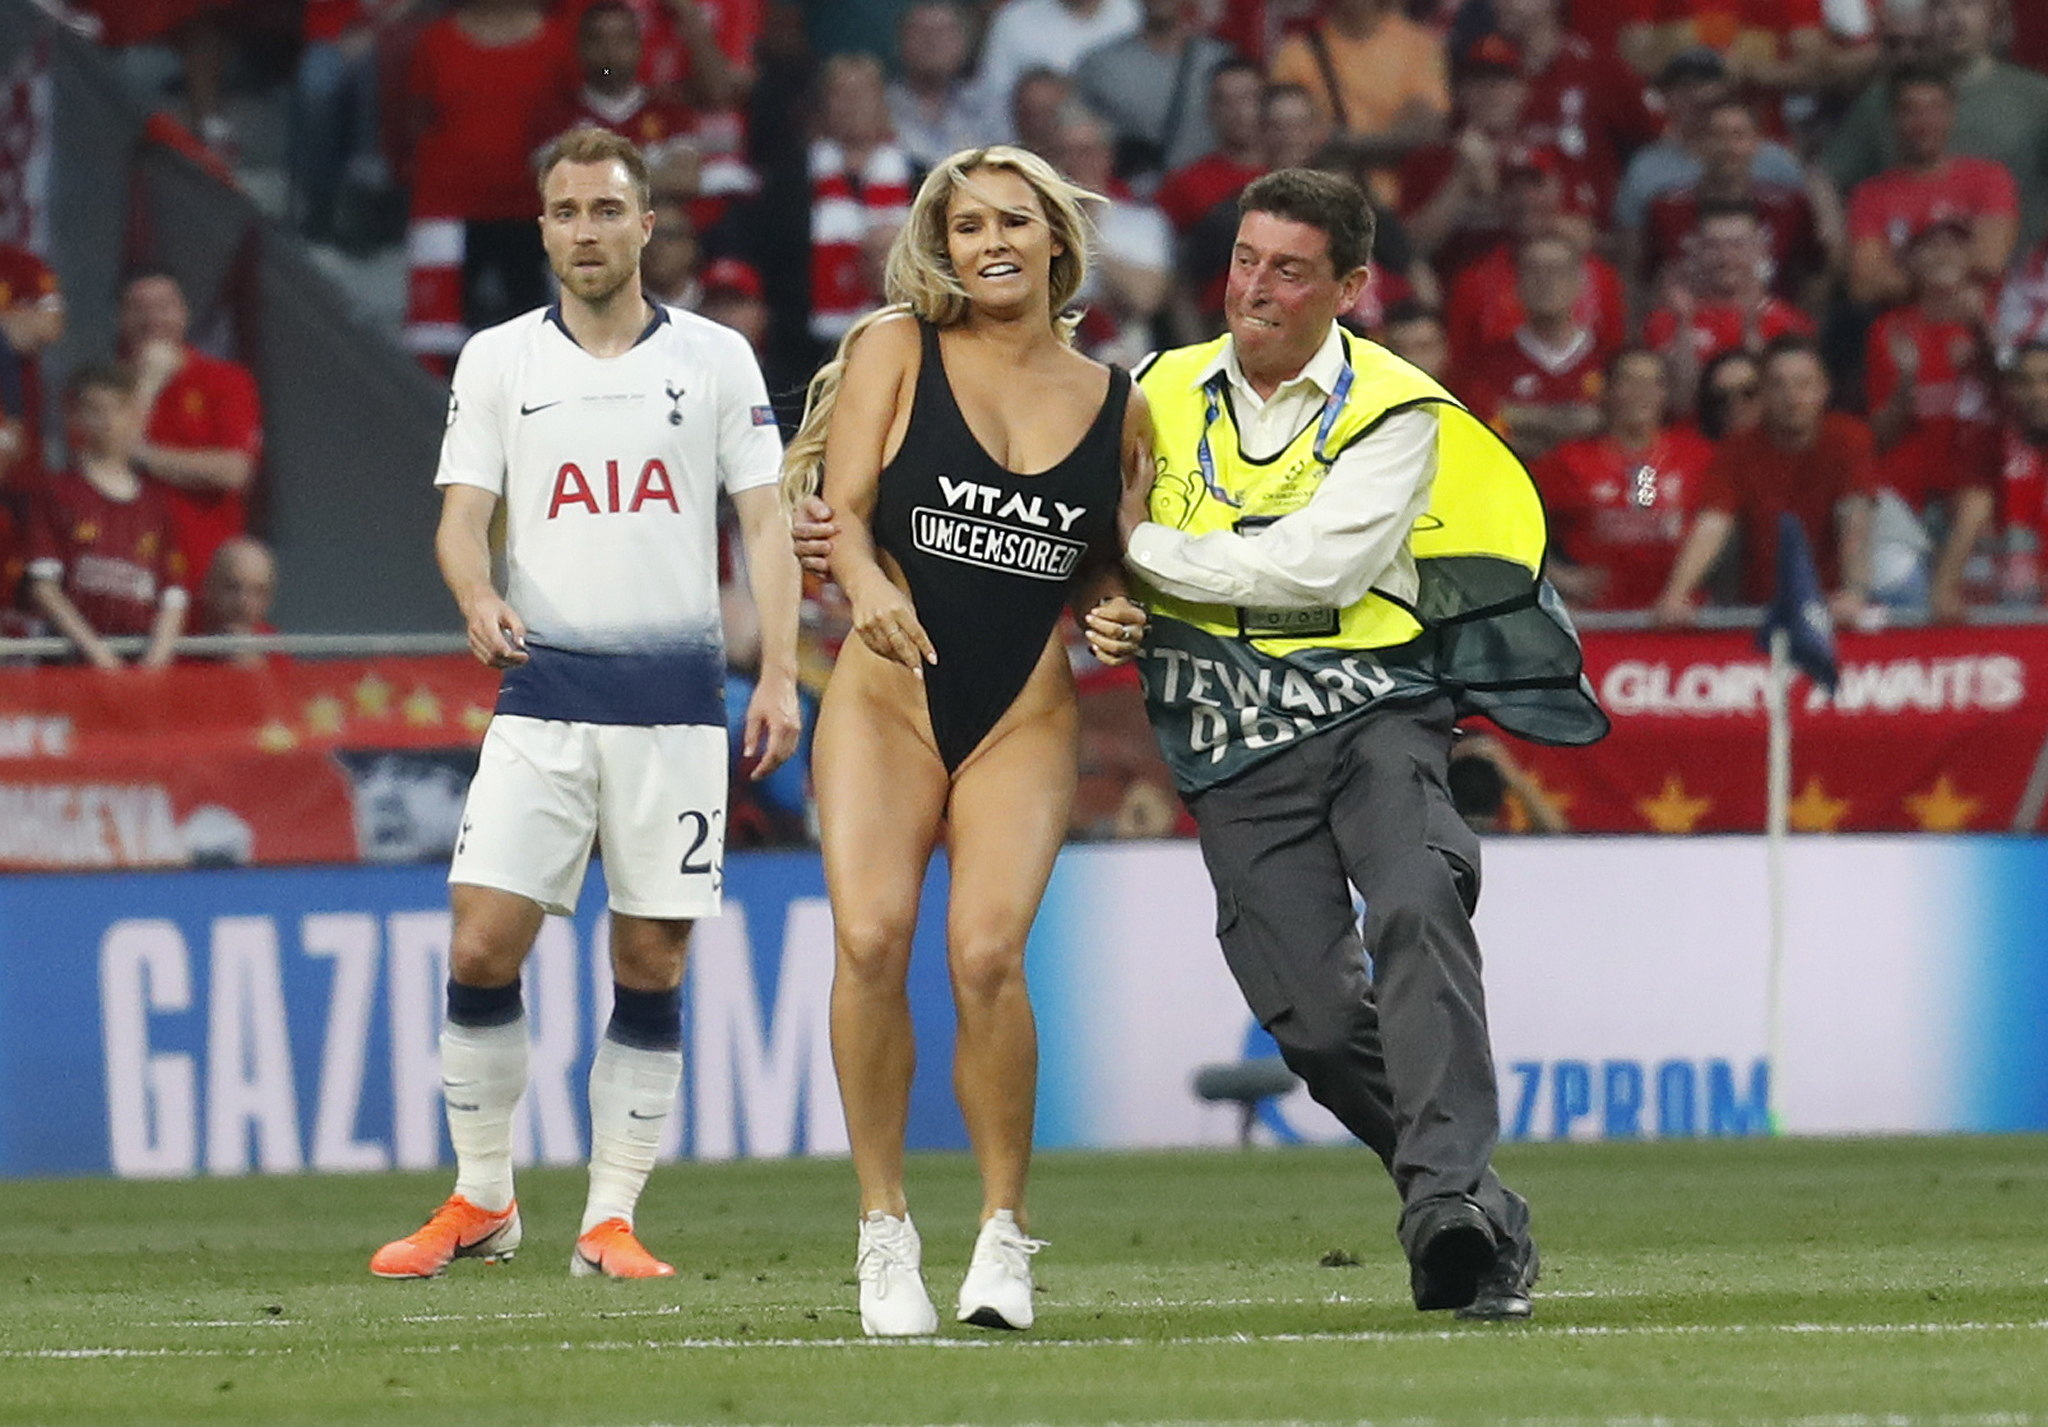 Kinsey Wolanski during the Champions League final